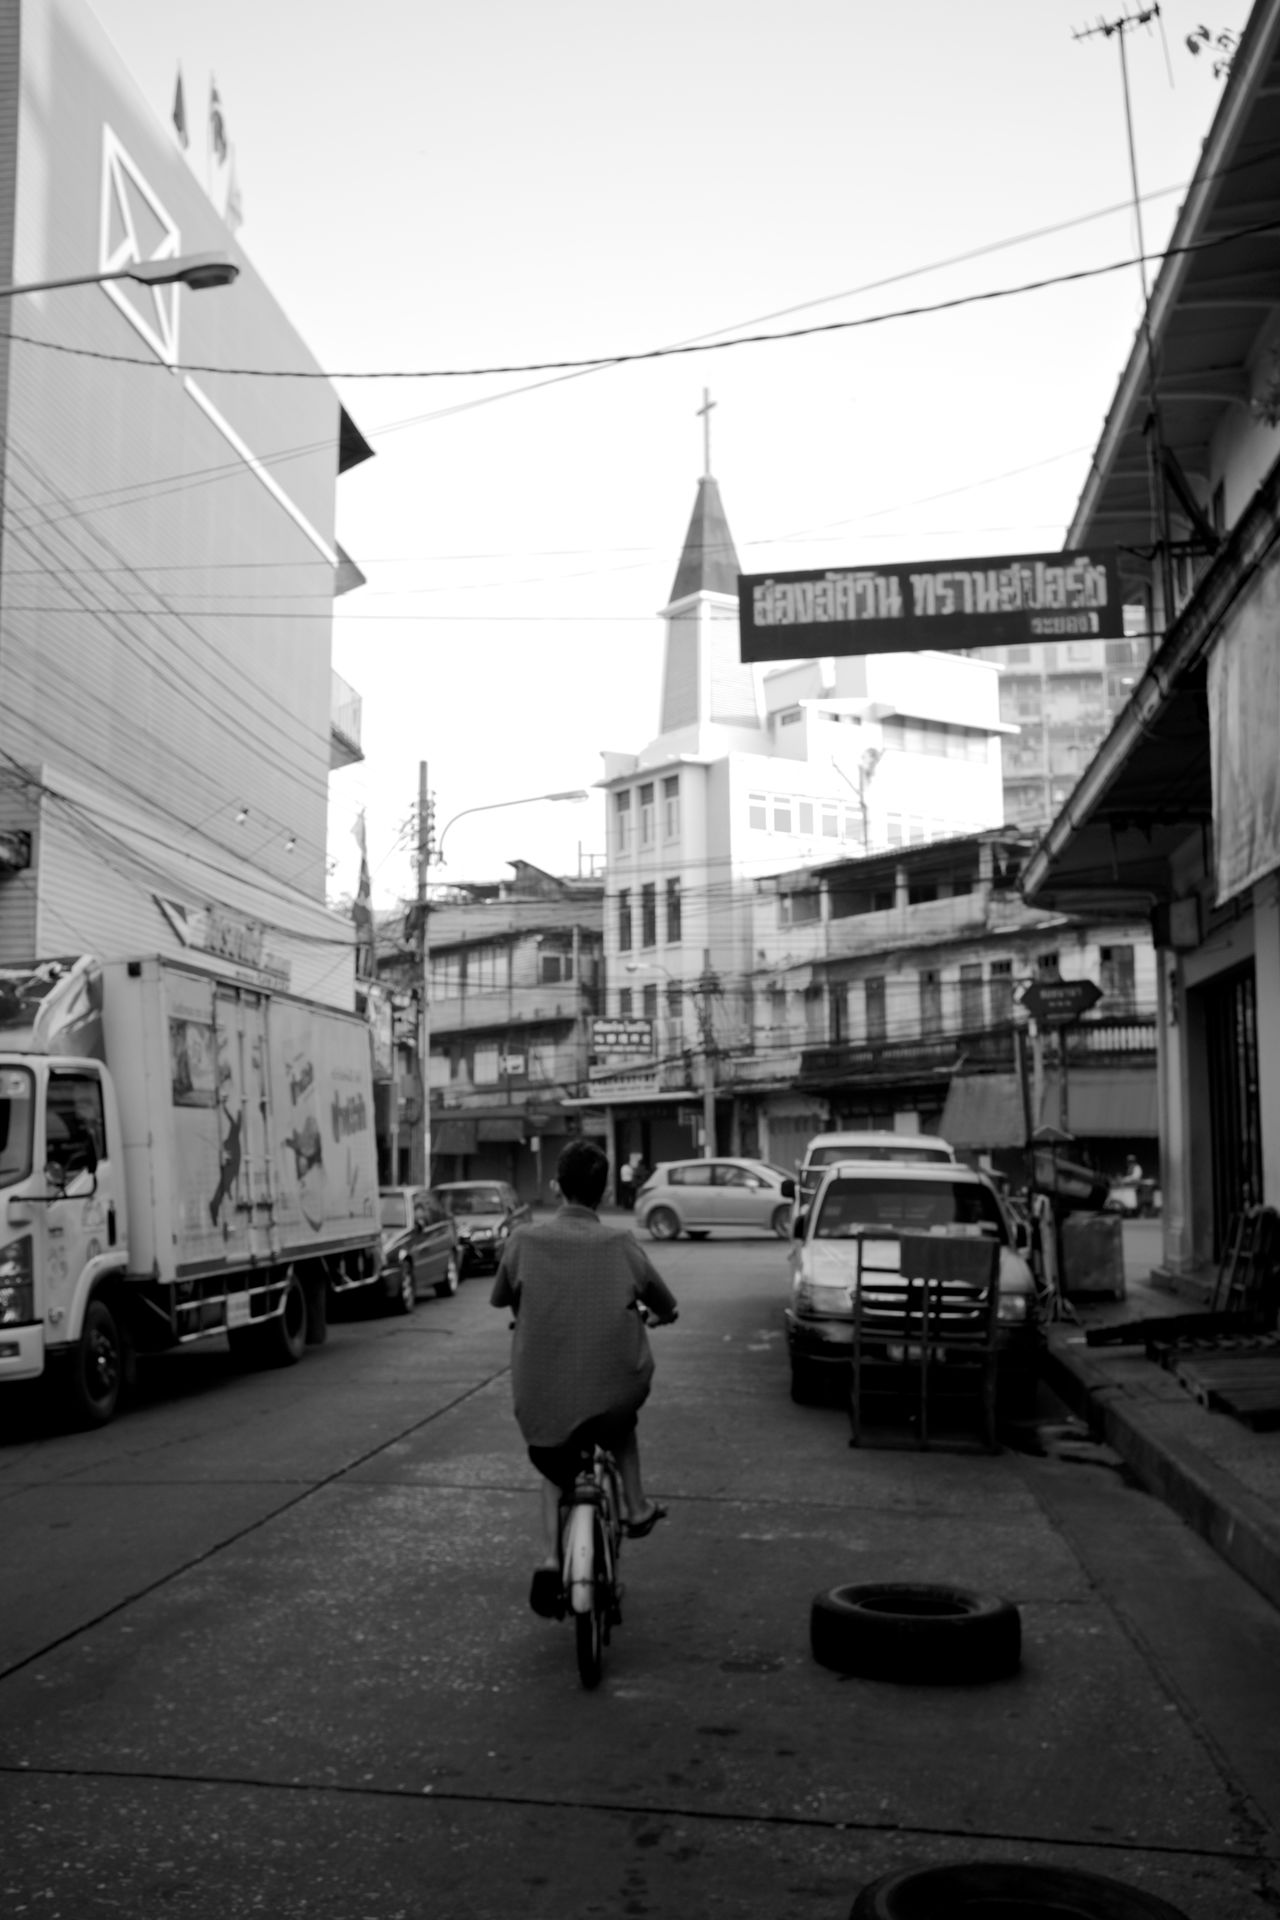 postcards from bangkok. B&w Street Photography Bangkok Bicycle Building Exterior City City Life City Street Early Morning Light Everybodystreet Fujifilm_xseries Man On A Bicycle Mode Of Transport Monochrome Real People Riding A Bicycle Street Photography Thailand Thailand_allshots The City Light Urban Urban Lifestyle Urban Skyline Urbanphotography